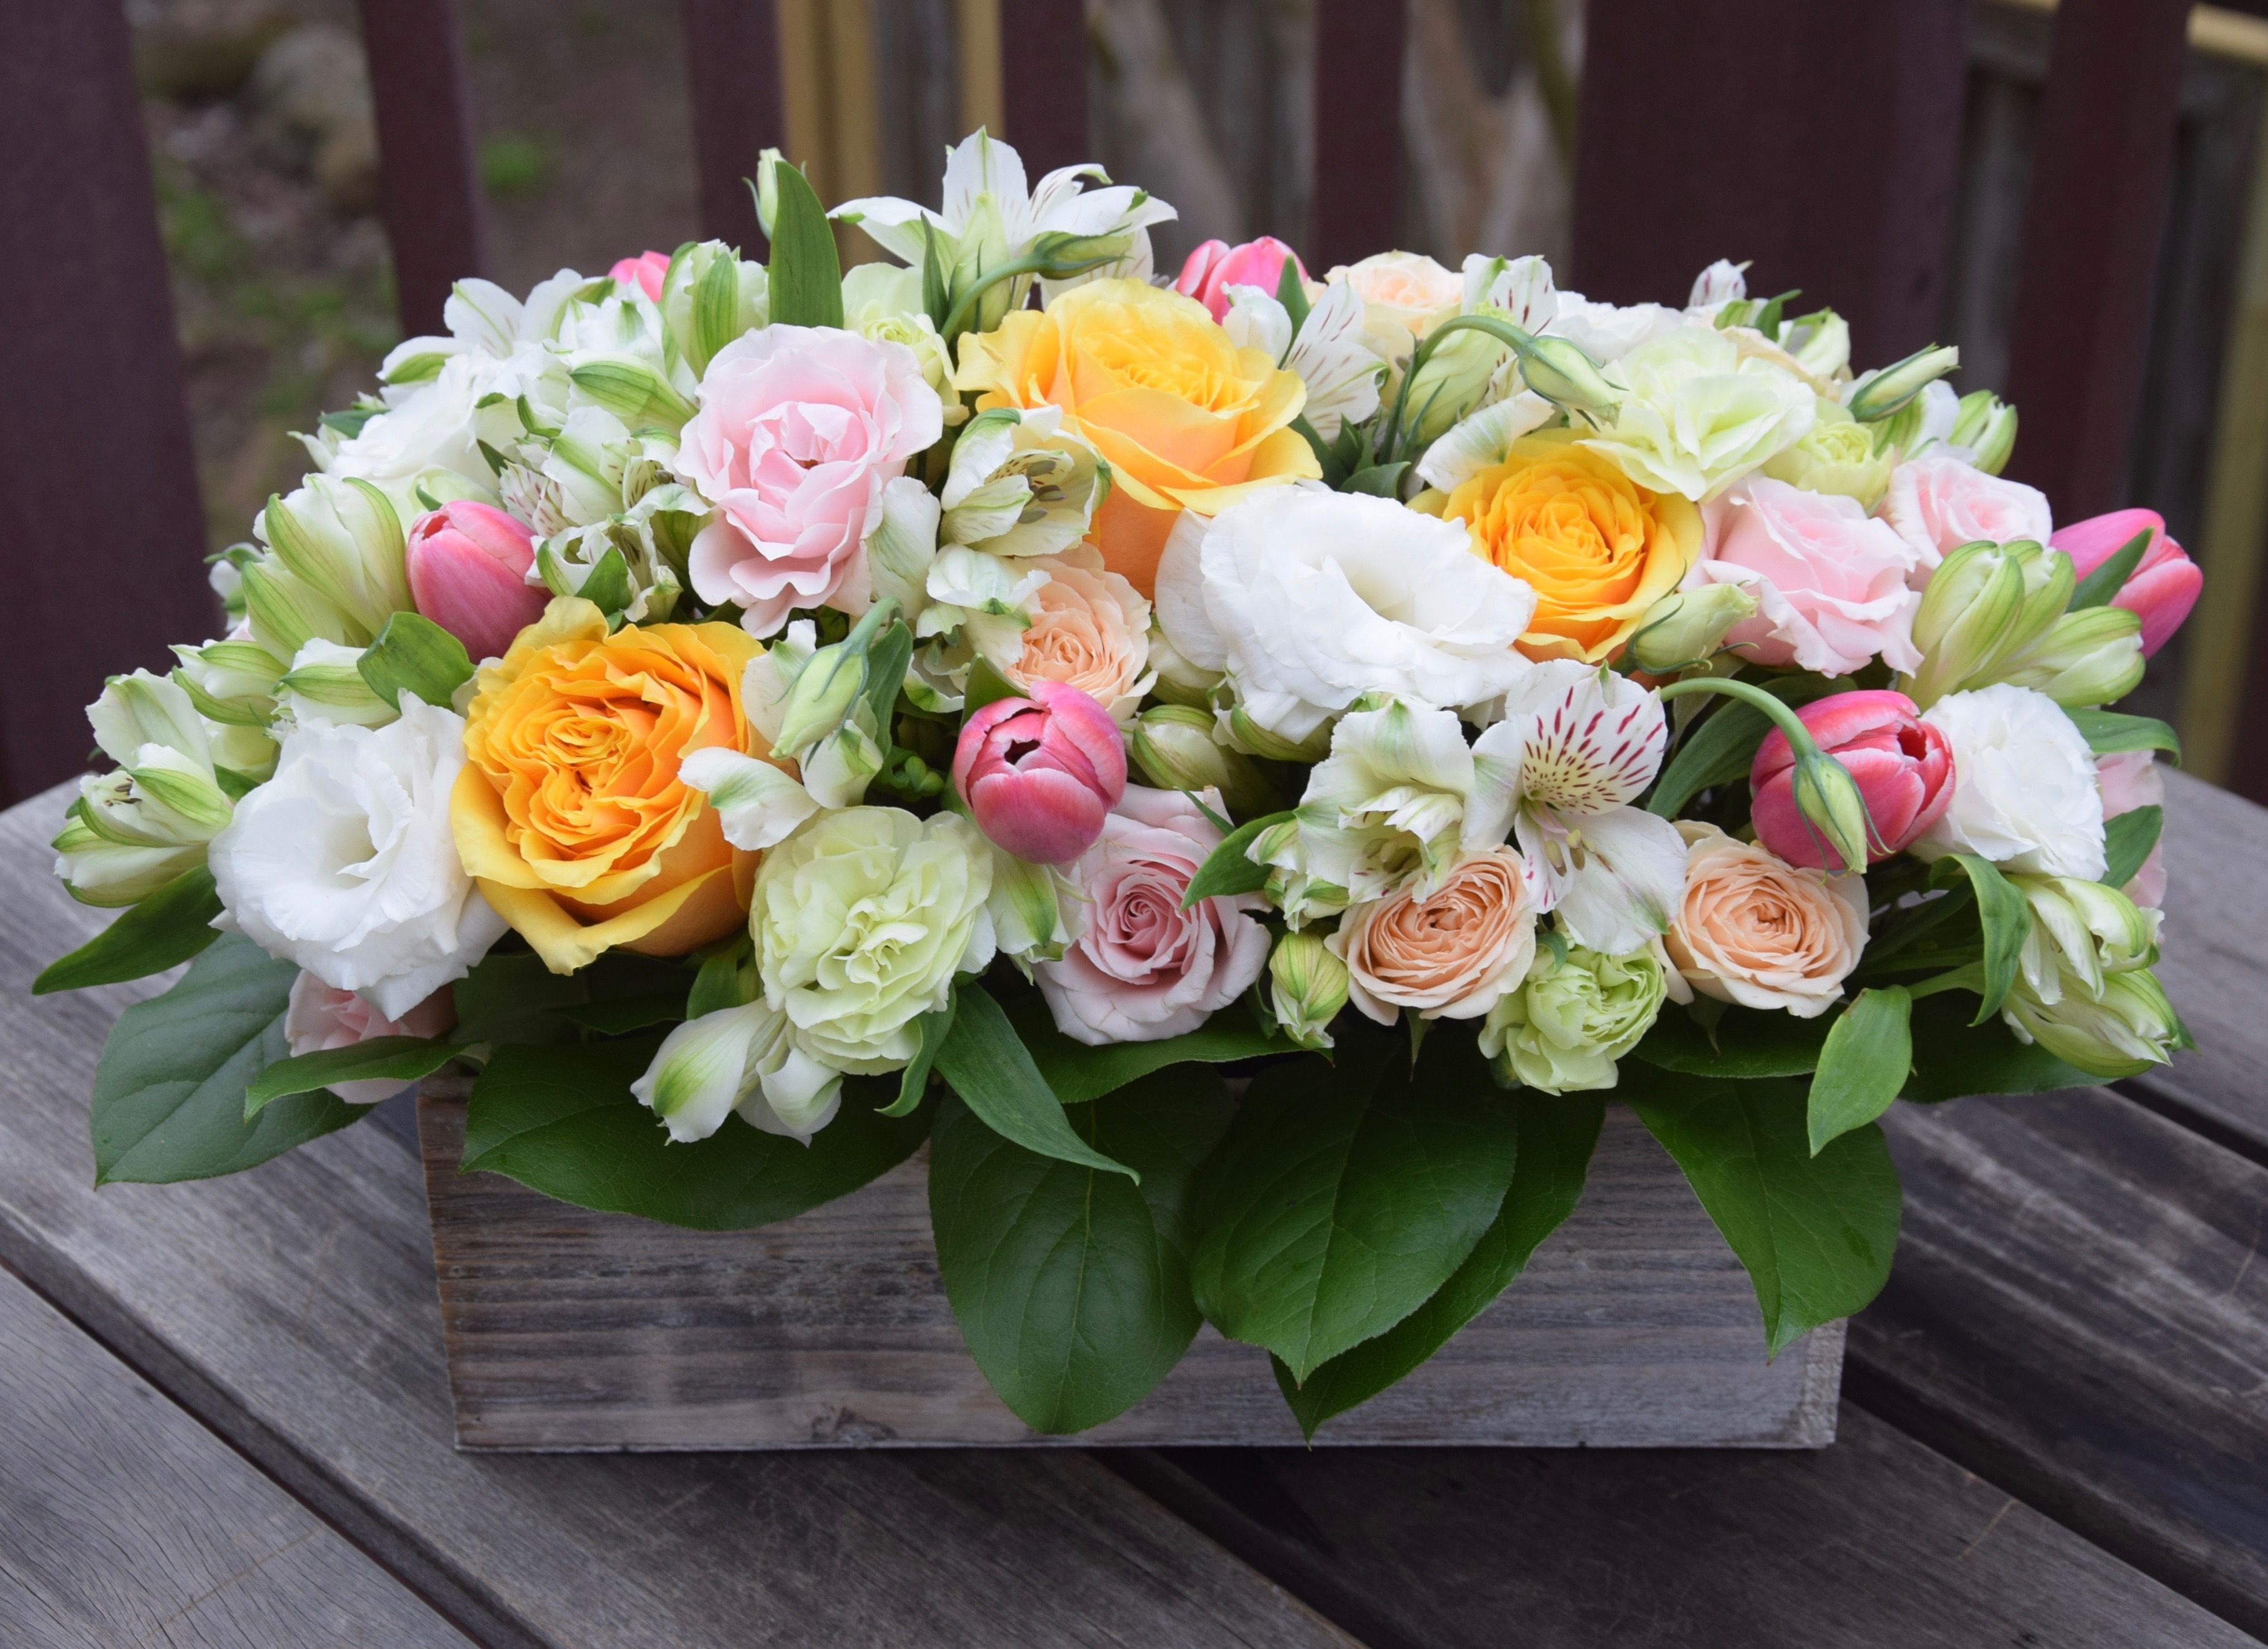 Blooming Garden Flower Box With Alstroemeria Roses Tulips